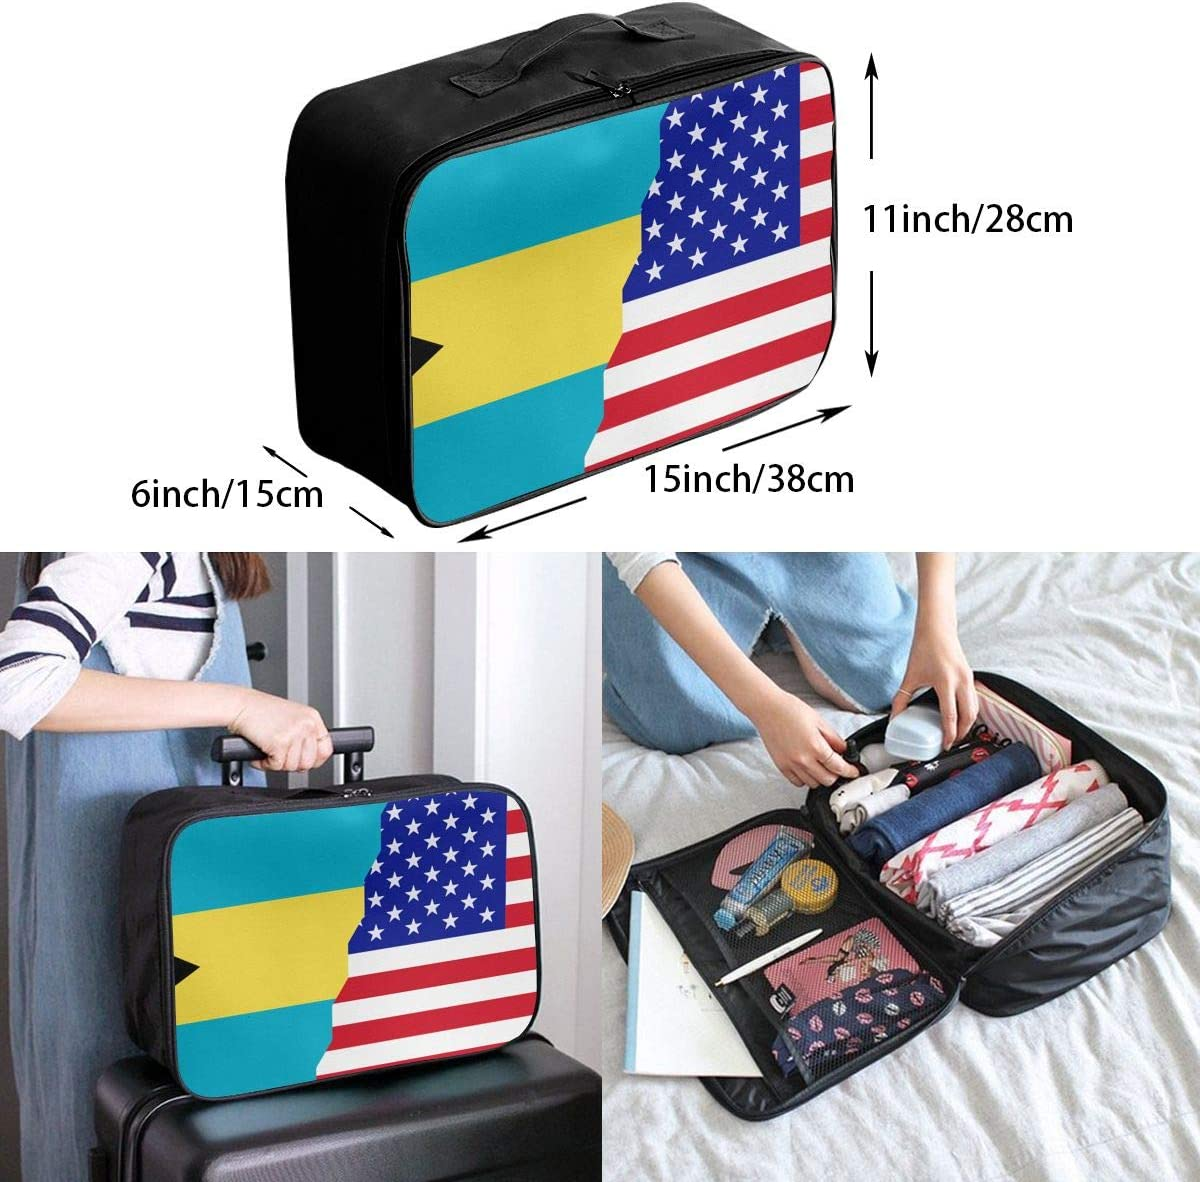 Bahamas American Flag Overnight Carry On Luggage Waterproof Fashion Travel Bag Lightweight Suitcases